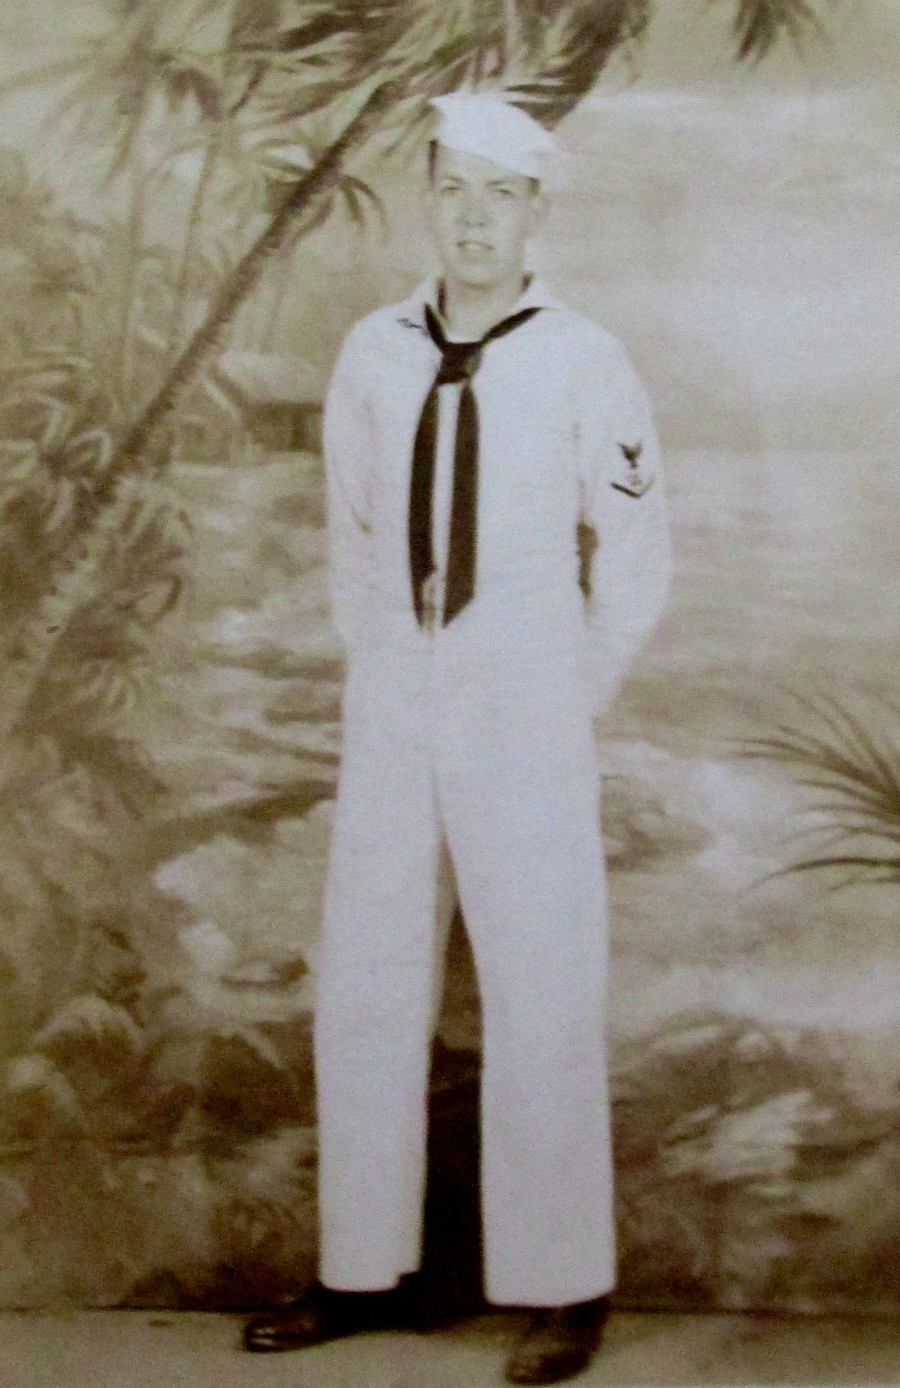 Alf Weidner made 3 Pacific combat cruises aboard sub USS Bowfin